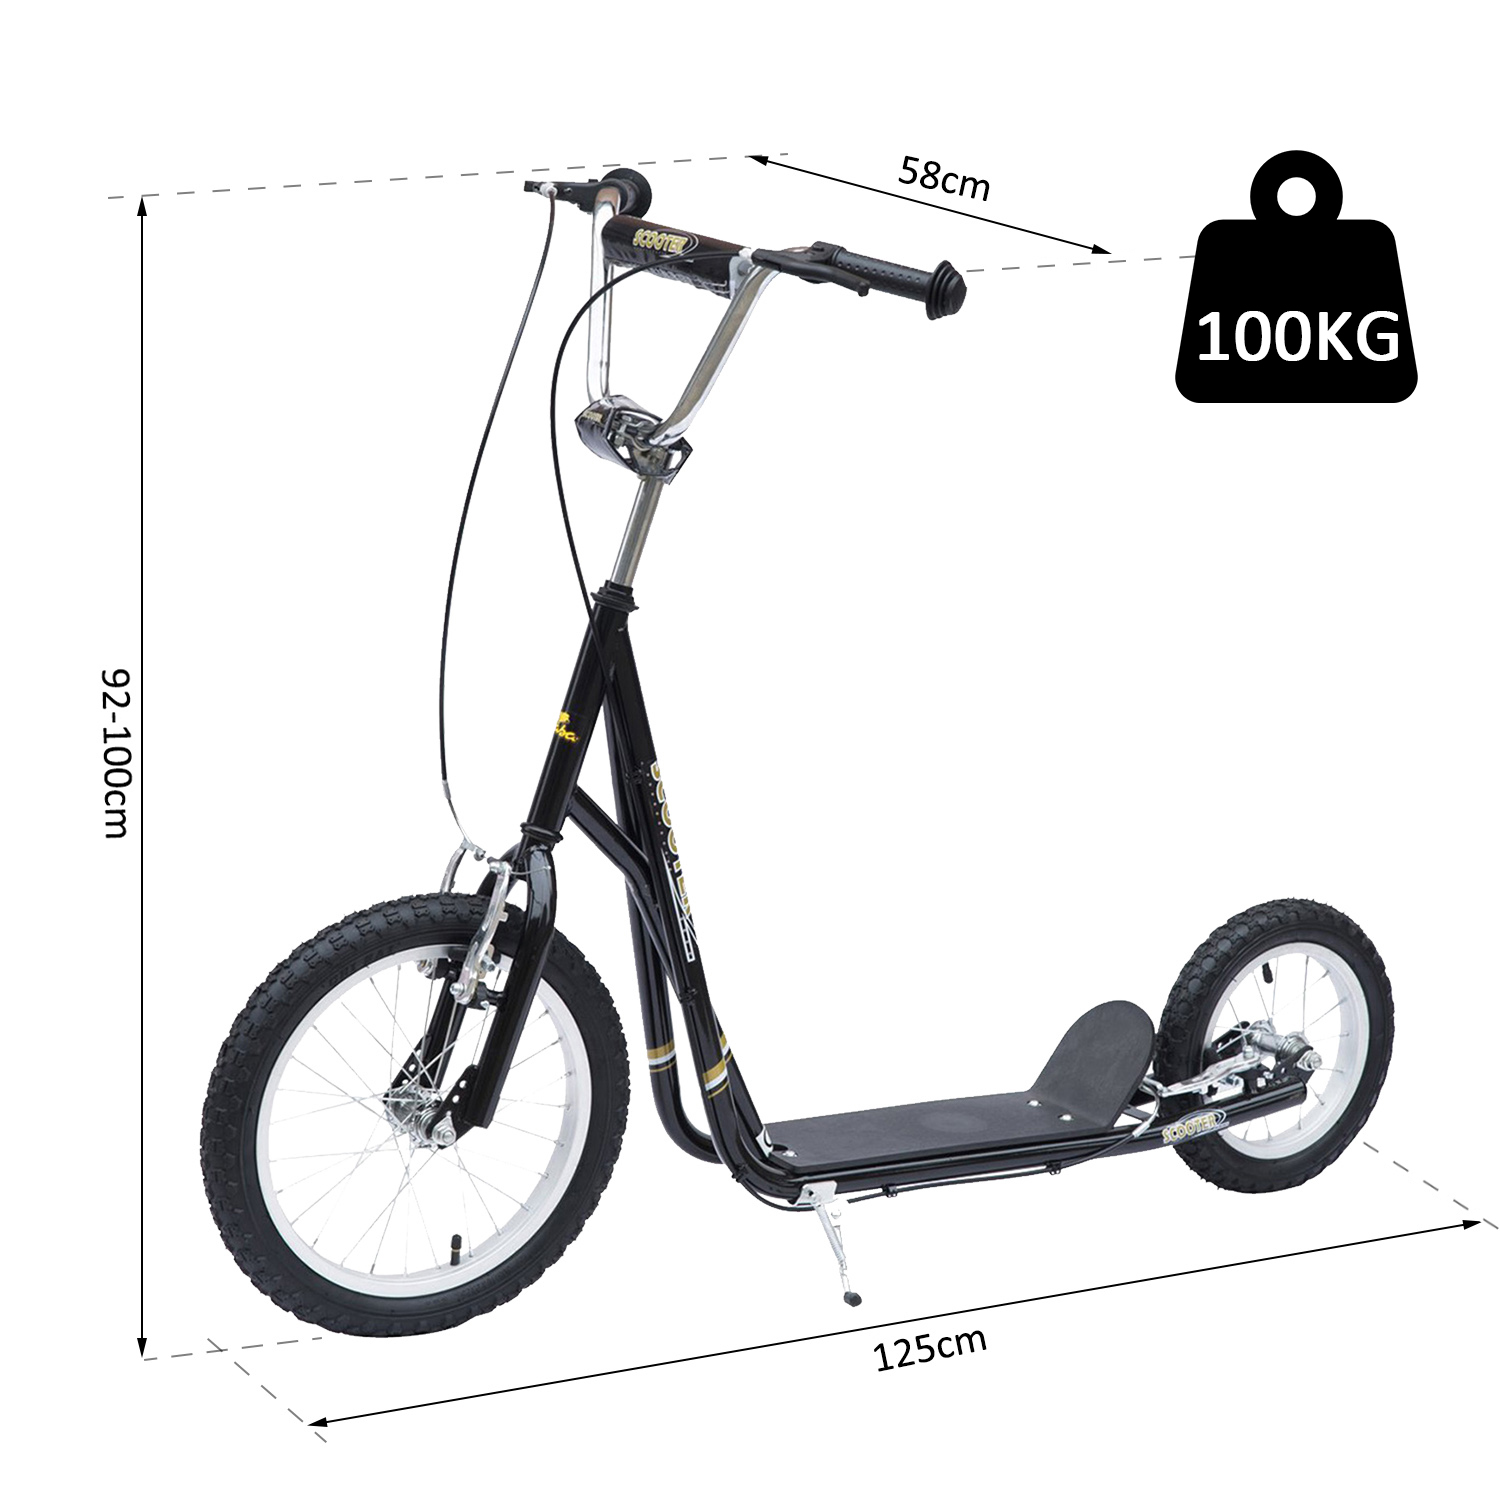 Adult-Teen-Push-Stunt-Kick-Scooter-Kids-Children-Bike-Bicycle-Ride-Street-New thumbnail 3